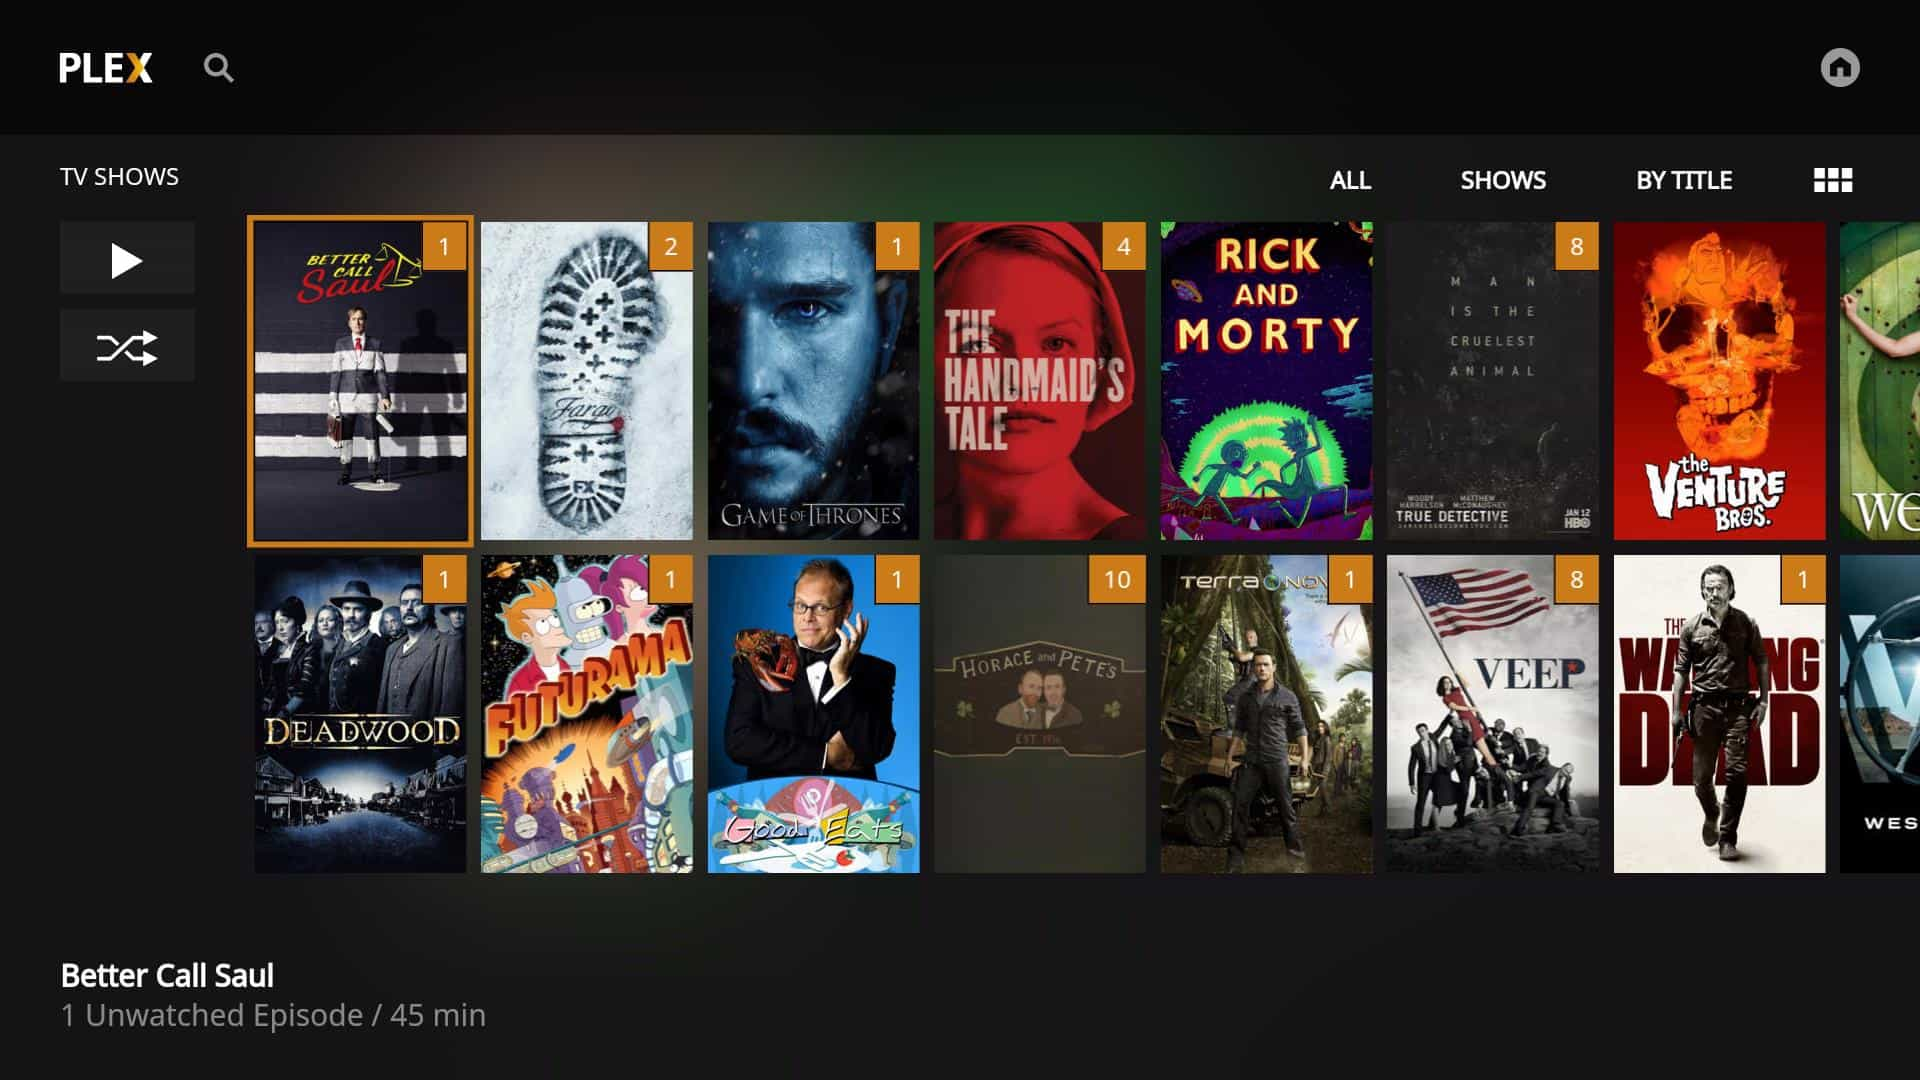 Fire TV Plex App - Watch 1